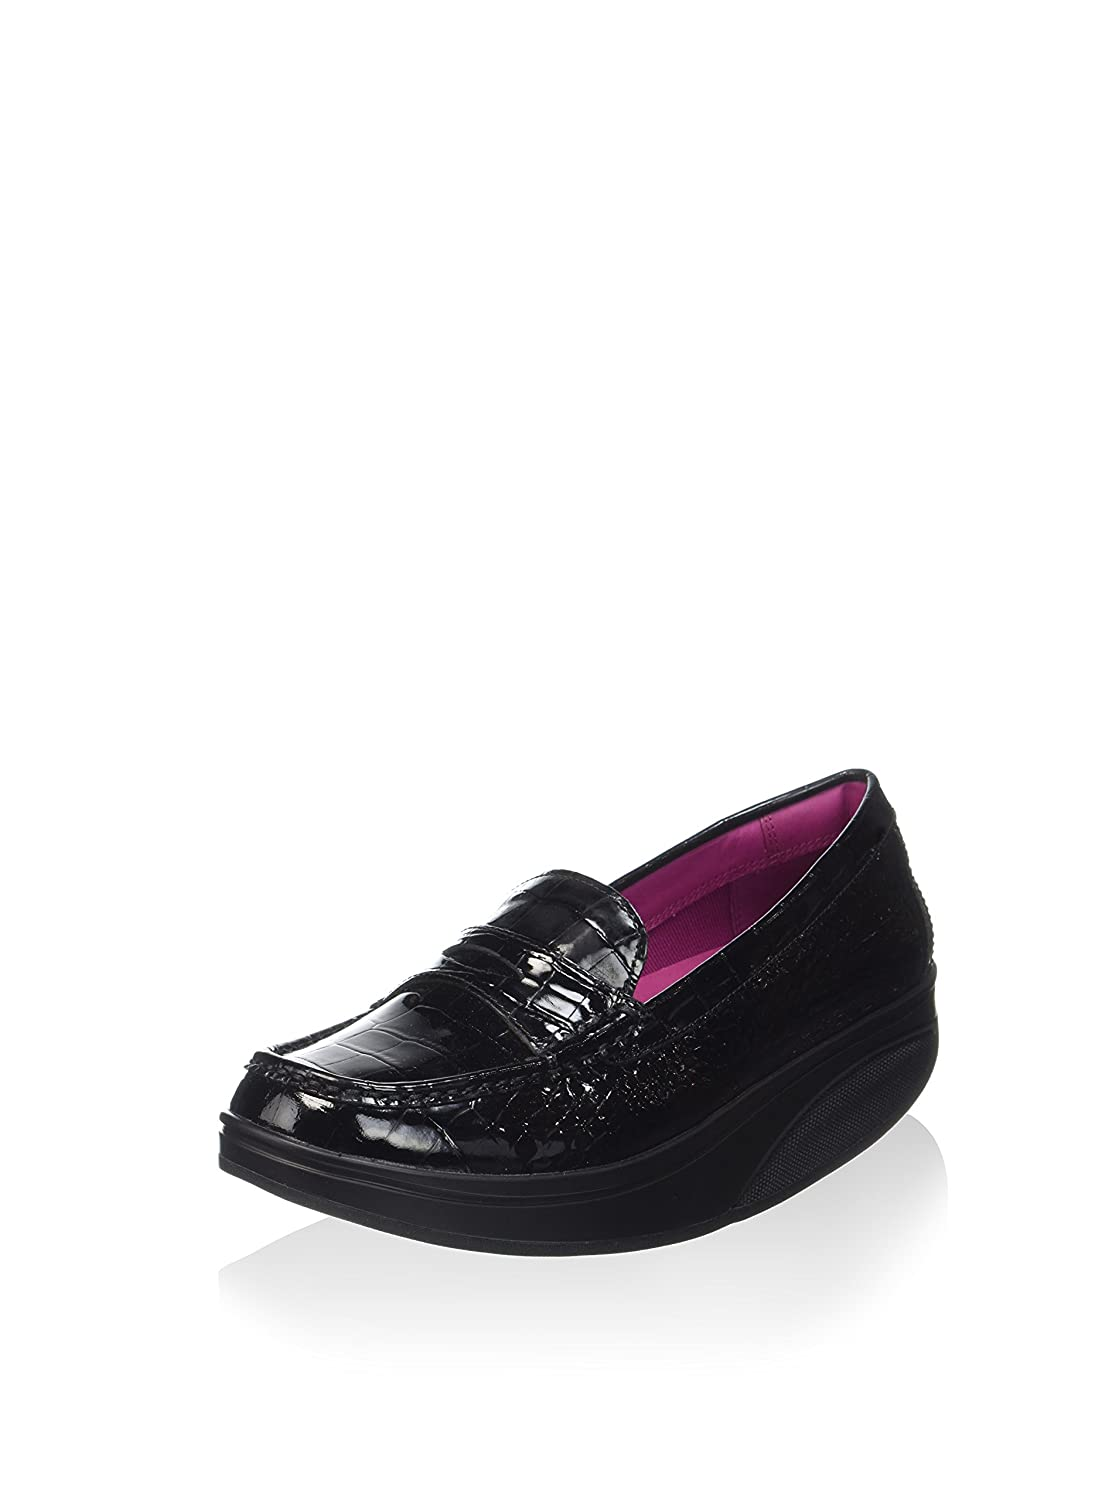 MBT Shani Luxe Penny Loafer, Mocassini Donna Nero (03p)